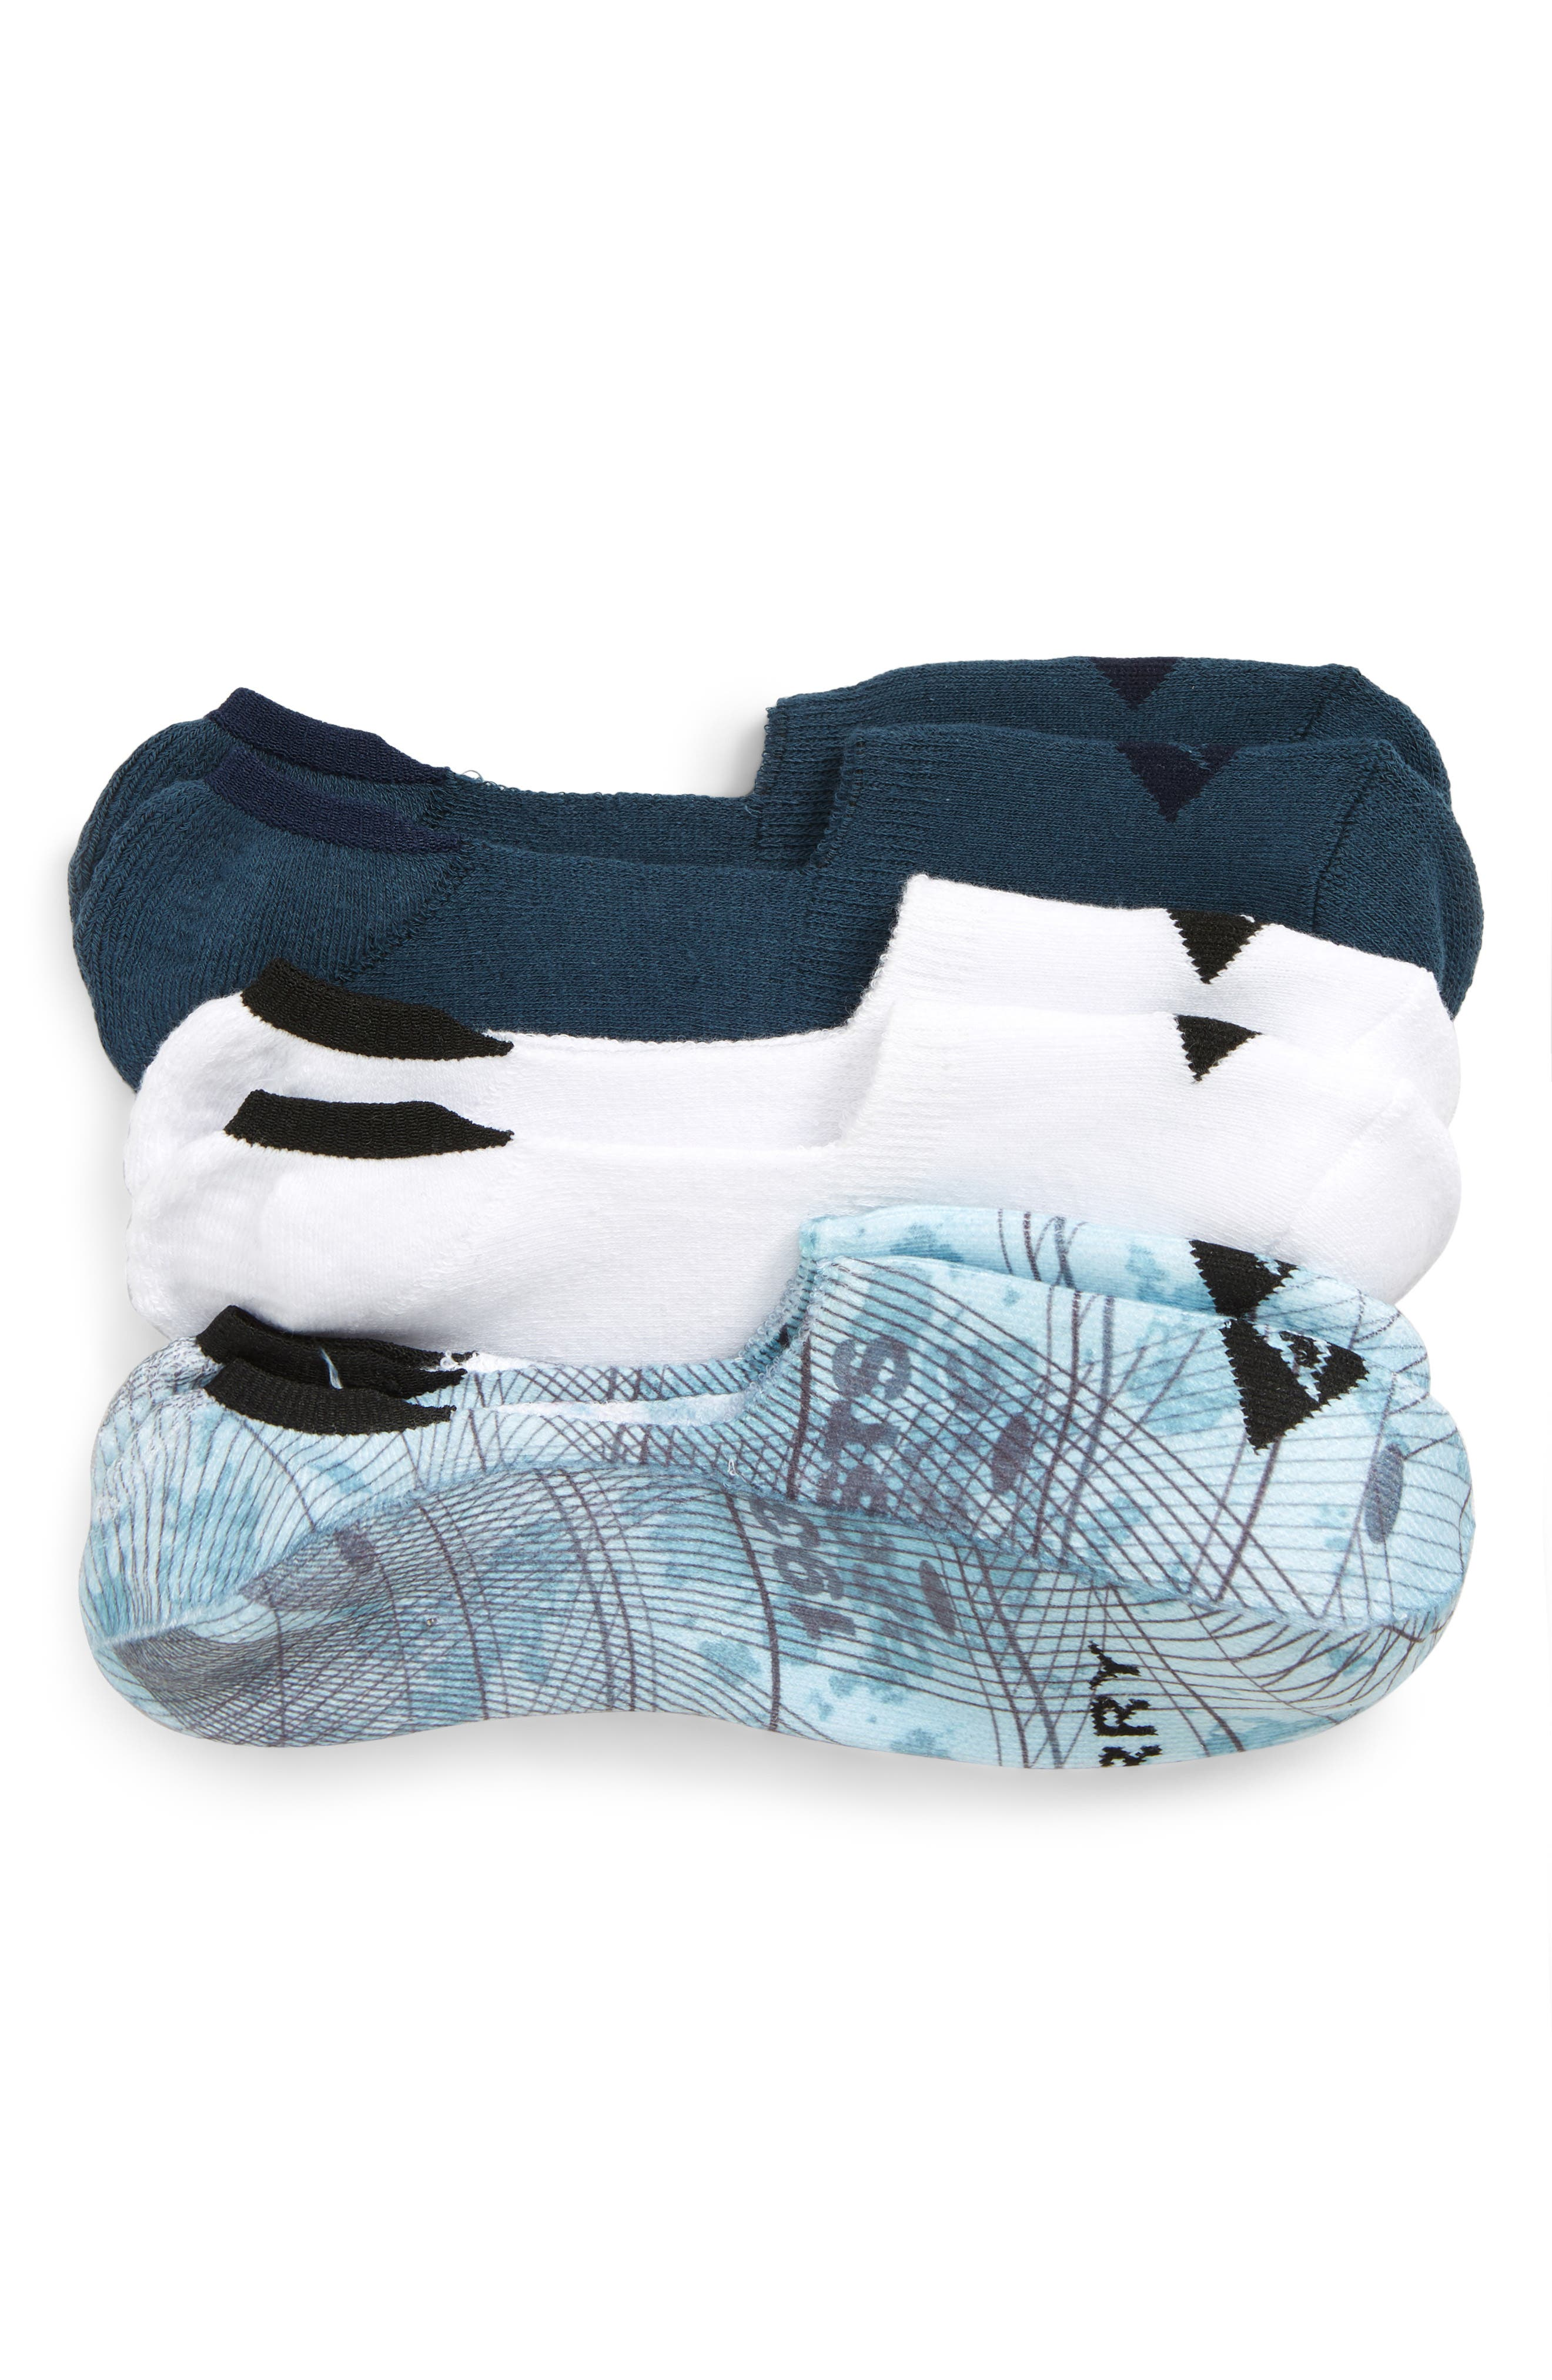 Spectra Sail Assorted 3-Pack Cushioned Liner Socks, Main, color, CAMEO BLUE ASST